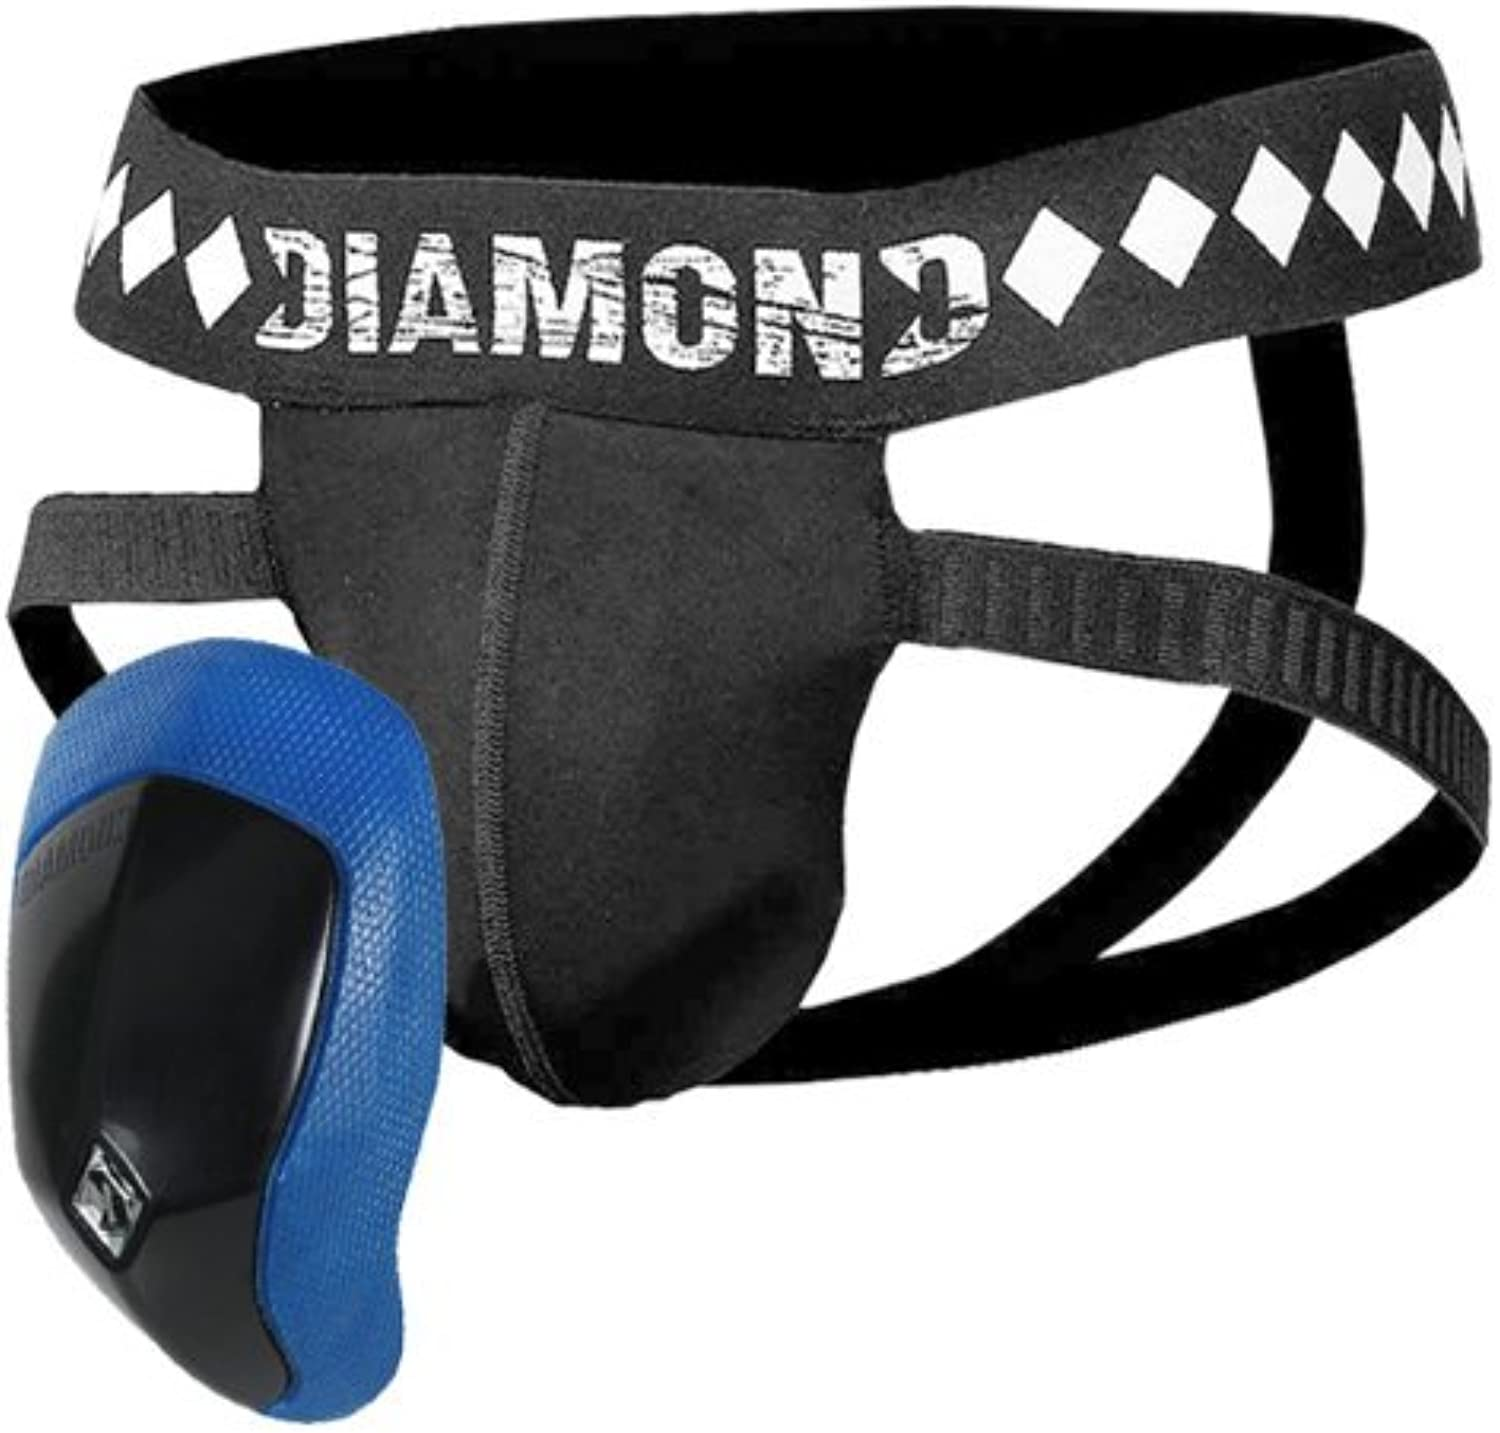 Diamond MMA 4 Strap Supporter Jock and Cup